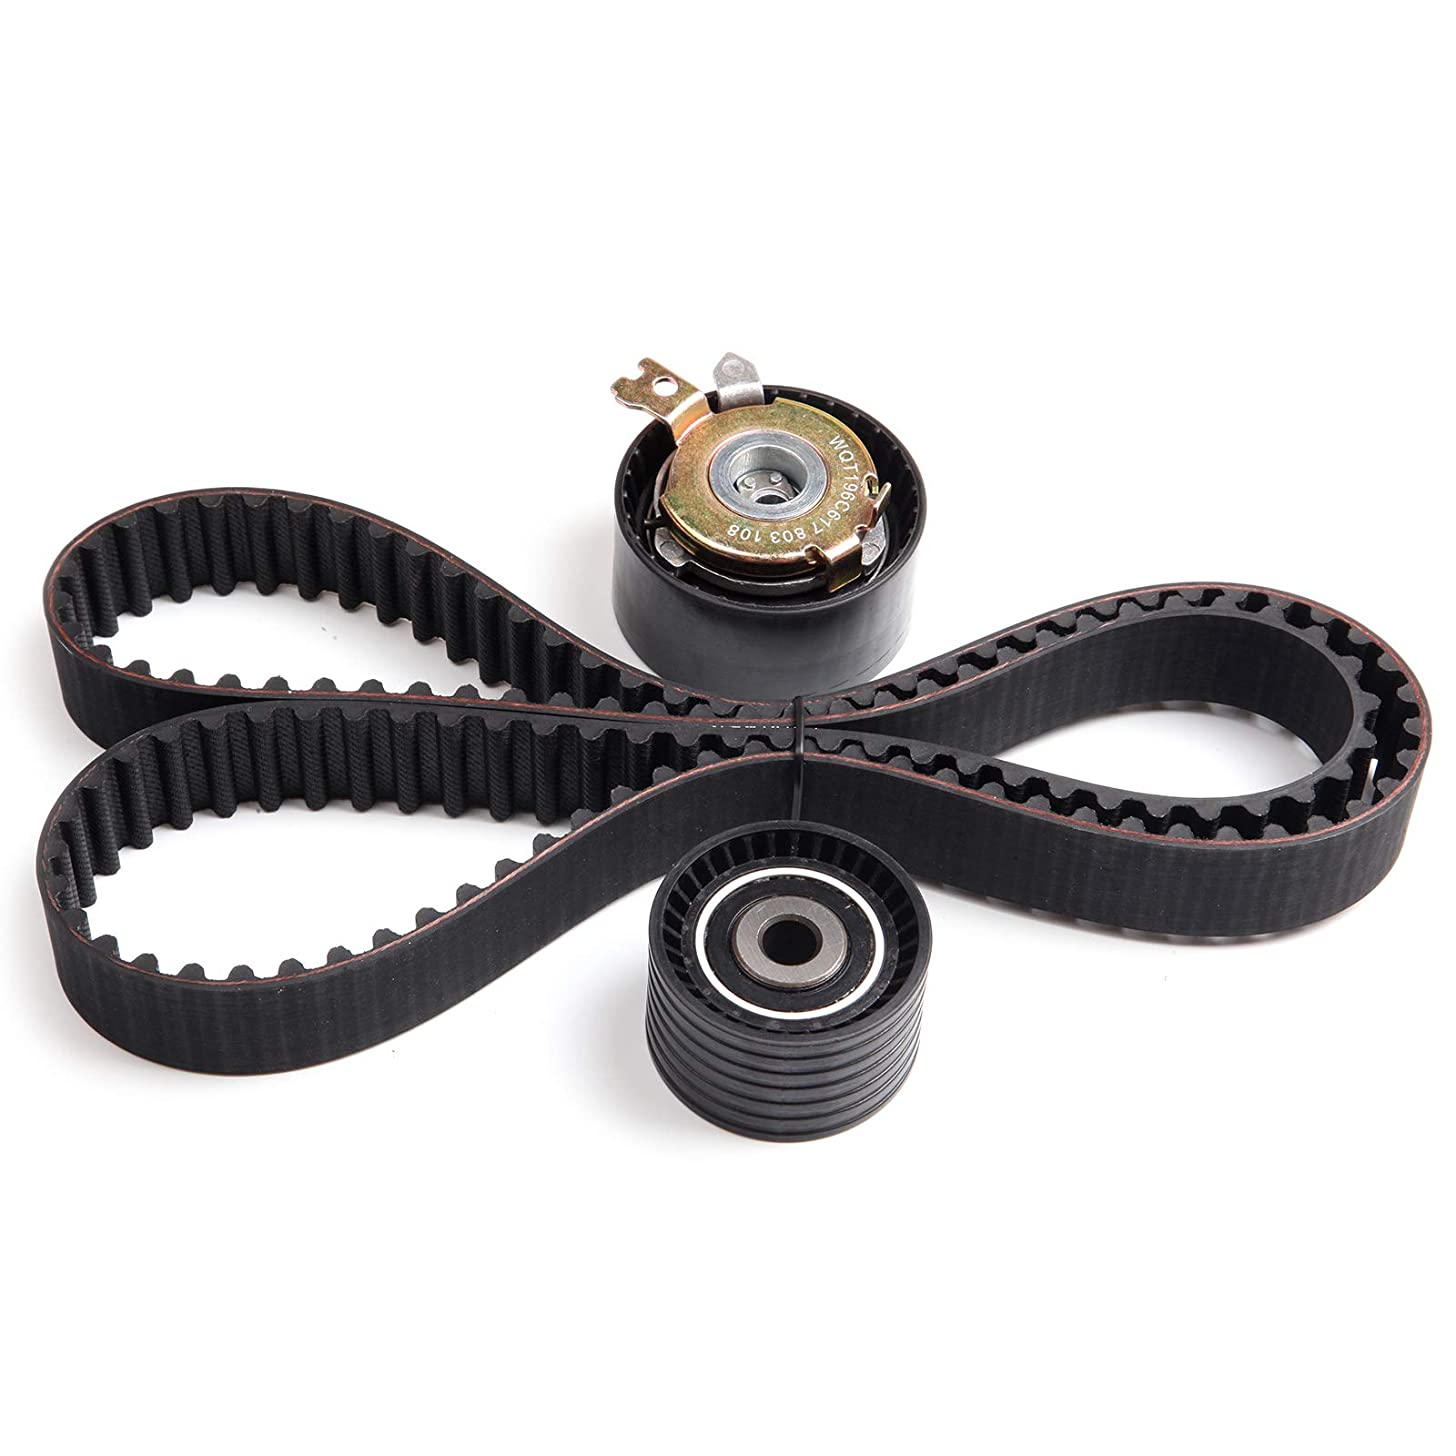 AUTOMUTO Timing Belt Kit TKTB331 Compatible for 2002-2008 Nissan Platina Renault Clio